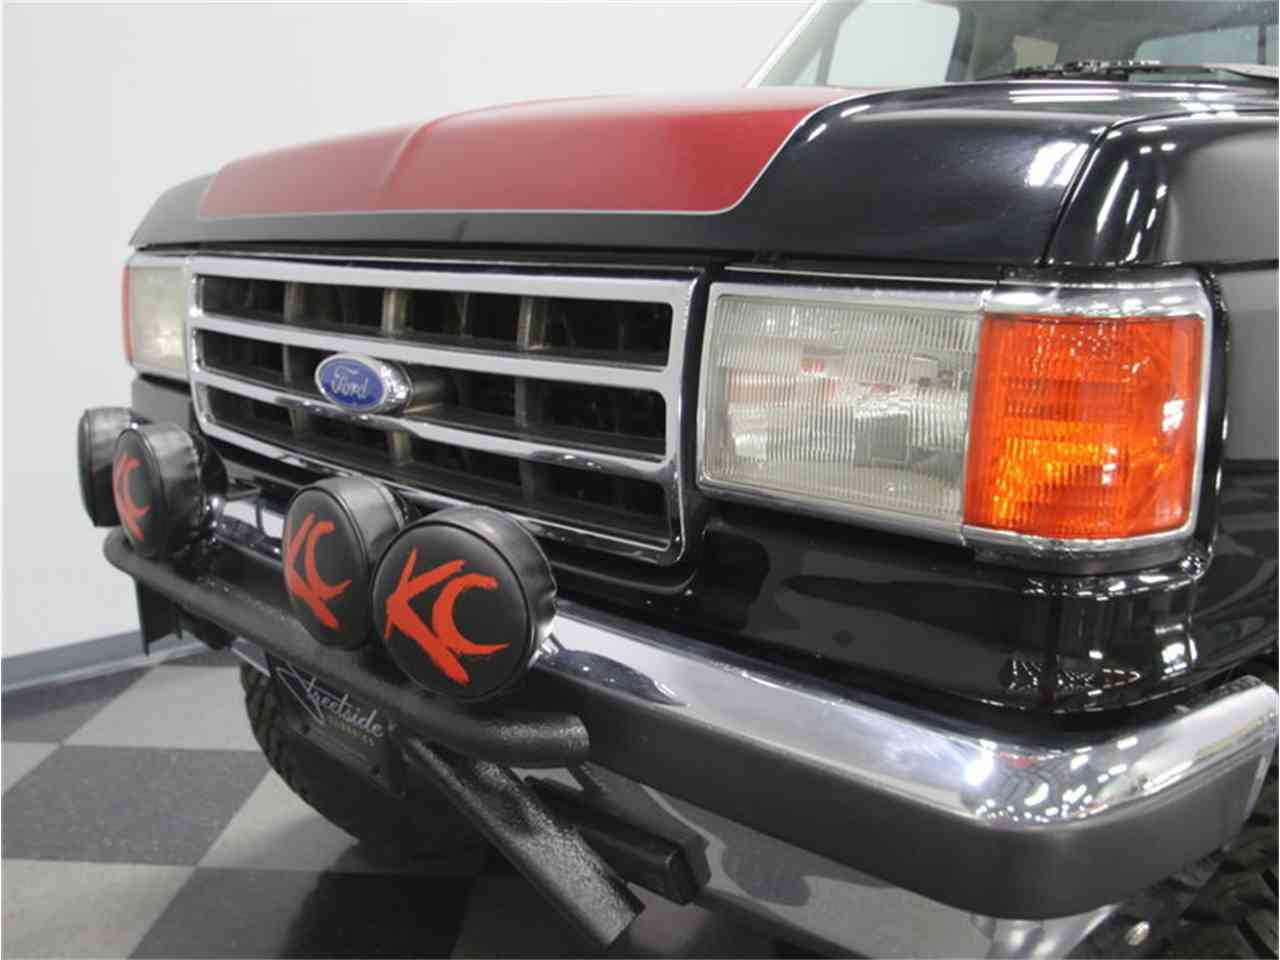 1989 F150 Fog Lights Wiring Diagrams Schematics Ford F 150 Light Diagram 4x4 Flareside For Sale Classiccars Com Cc 978774 Large Picture Of 89 Kz86